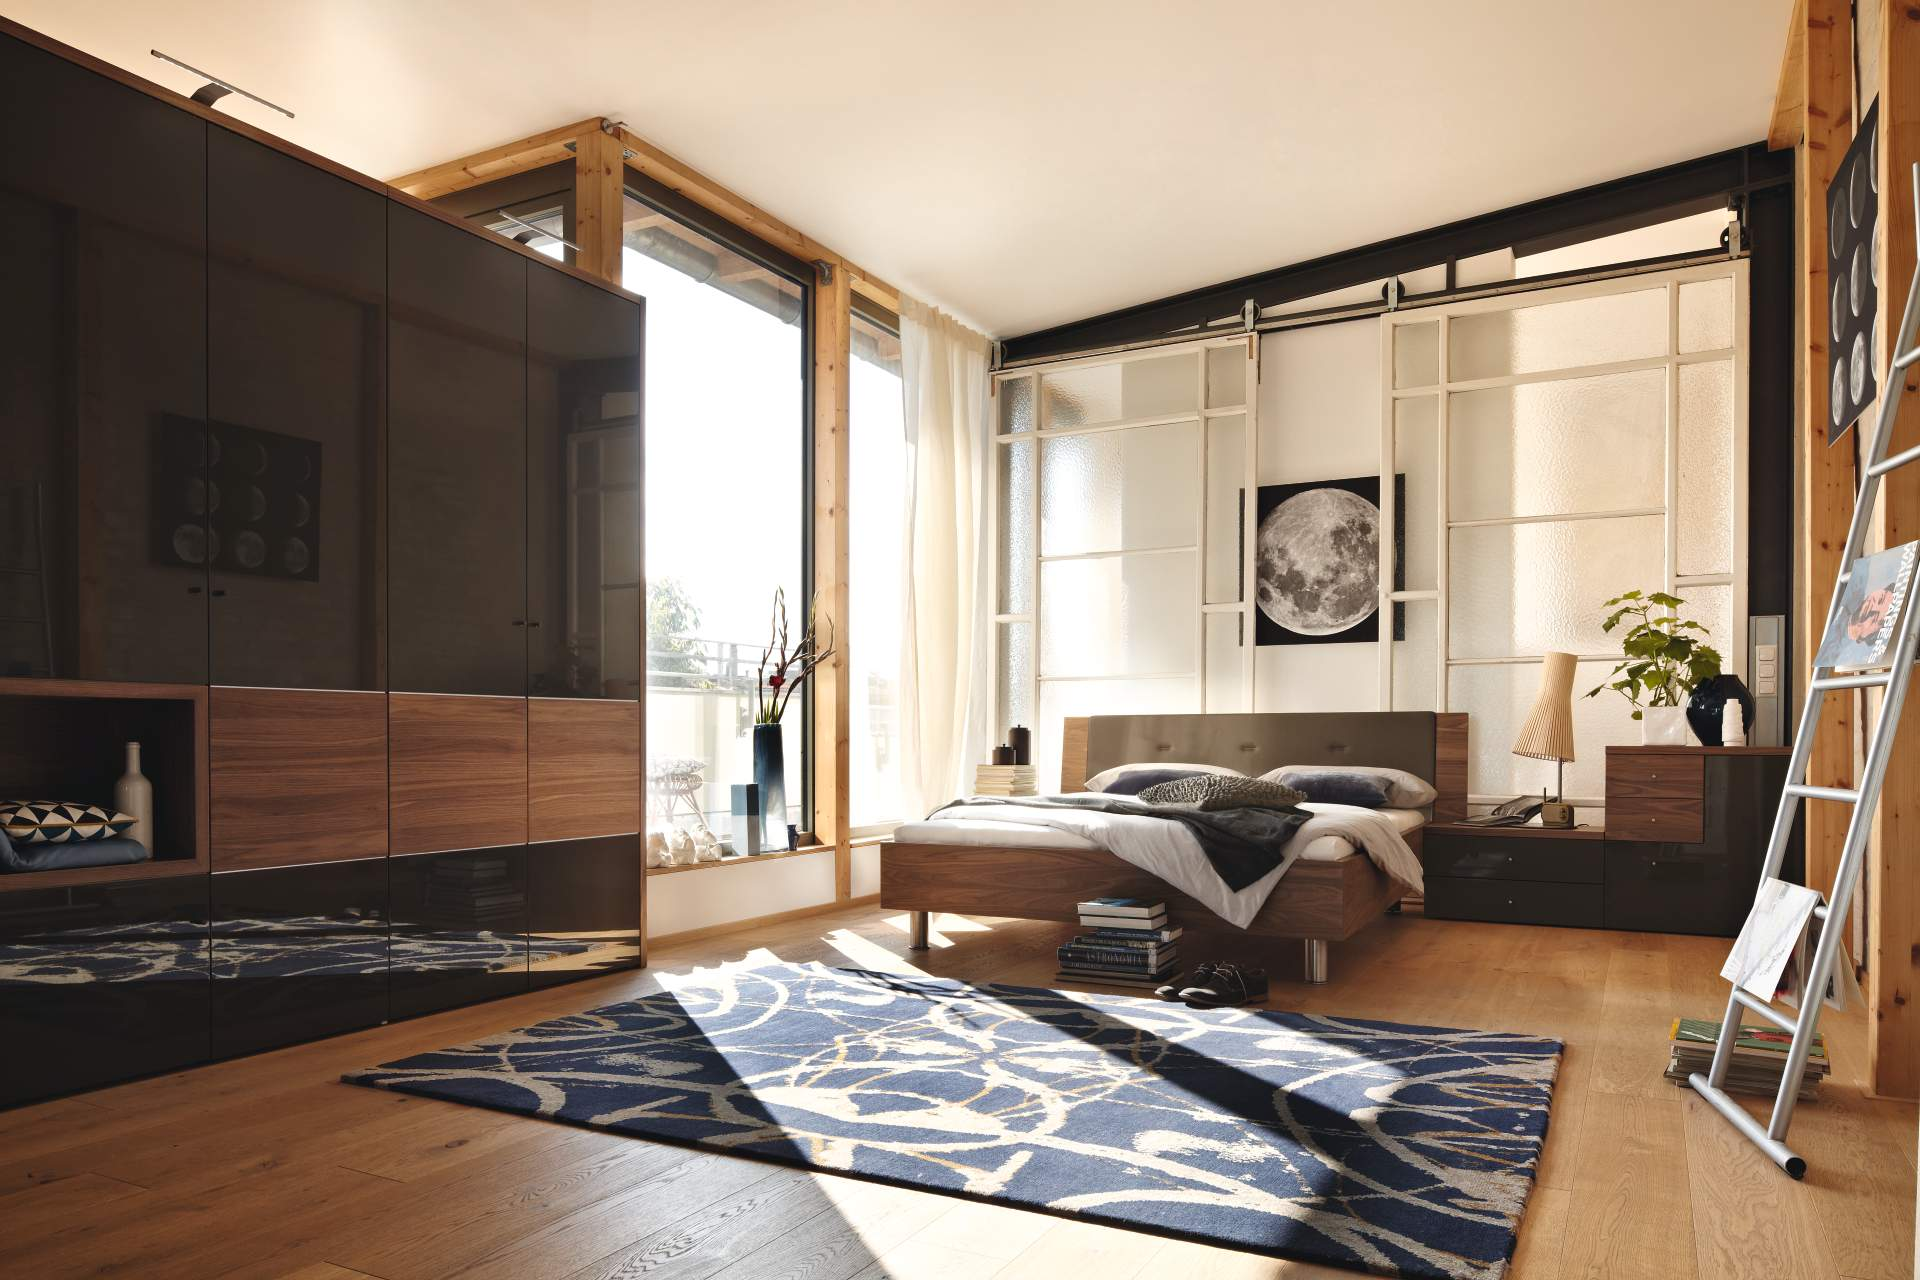 h lsta schlafzimmer. Black Bedroom Furniture Sets. Home Design Ideas